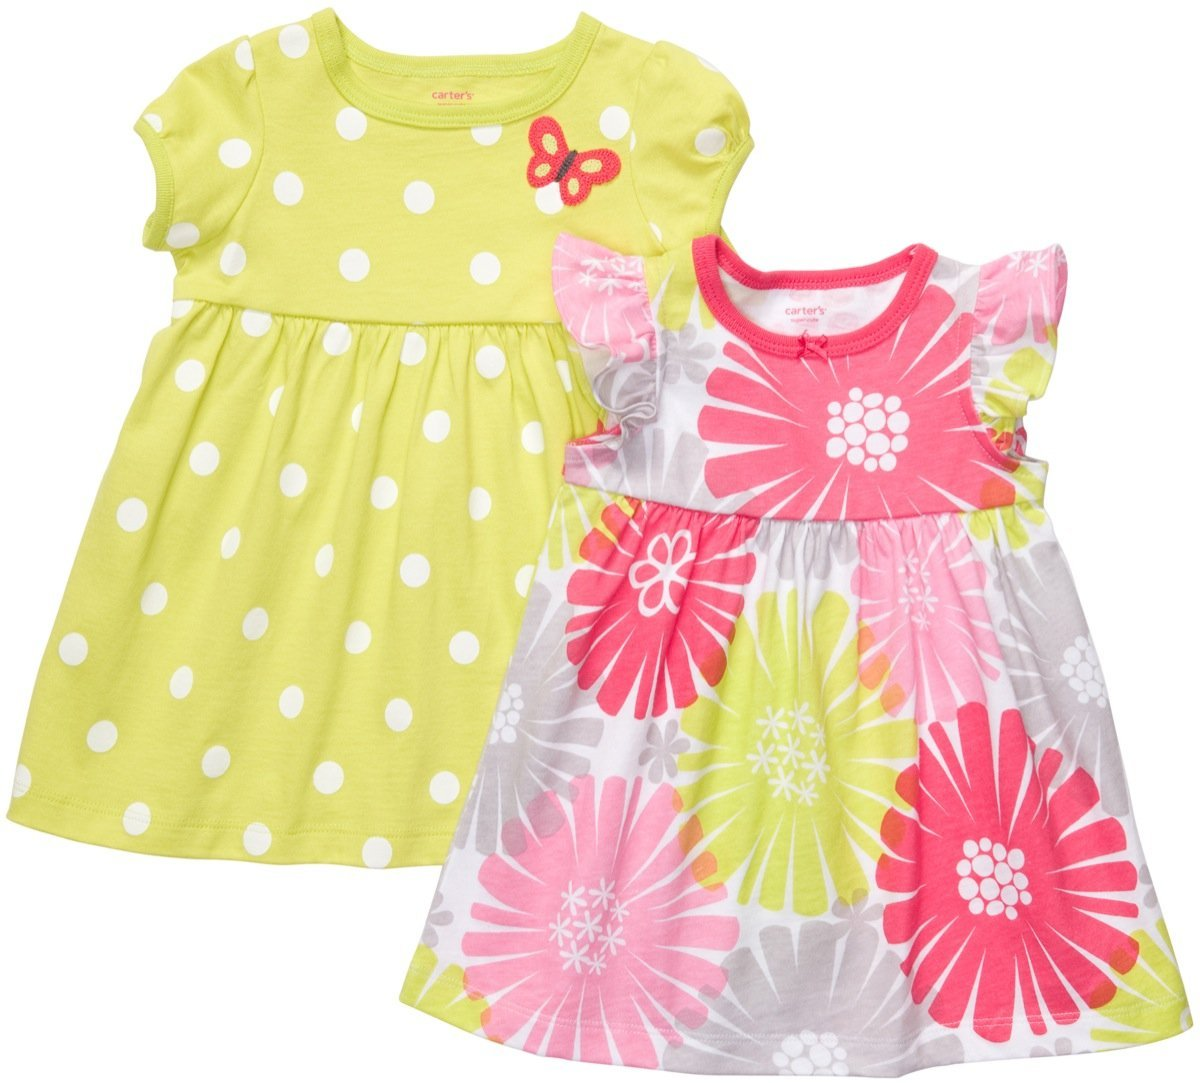 Shop Quality Children's Special Occasion Clothing, Coordinating Brother-Sister Outfits, Family Sleepwear, Coats, Toys & Accessories from The Wooden Soldier mostly Made in USA. We Carry Girls Special Occasion Dresses, Matching Brother Sister Outfits, Tween Dresses, Boys Outfits, Baby & .